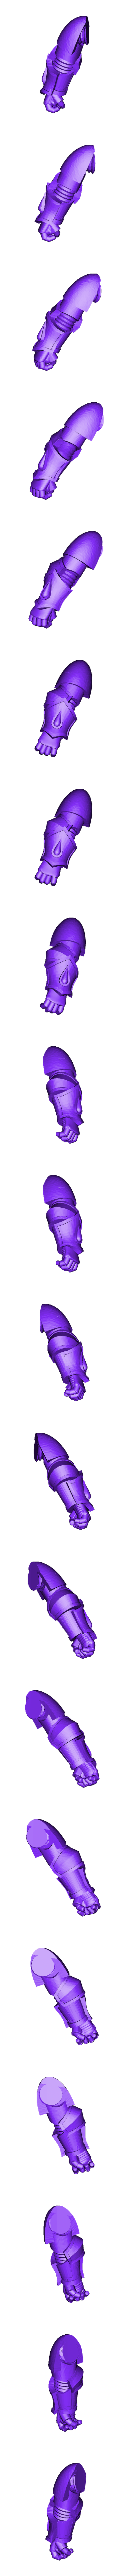 righthand_3.stl Download STL file Sanguine Angels  Arms and Weapons • 3D printer template, vb2341